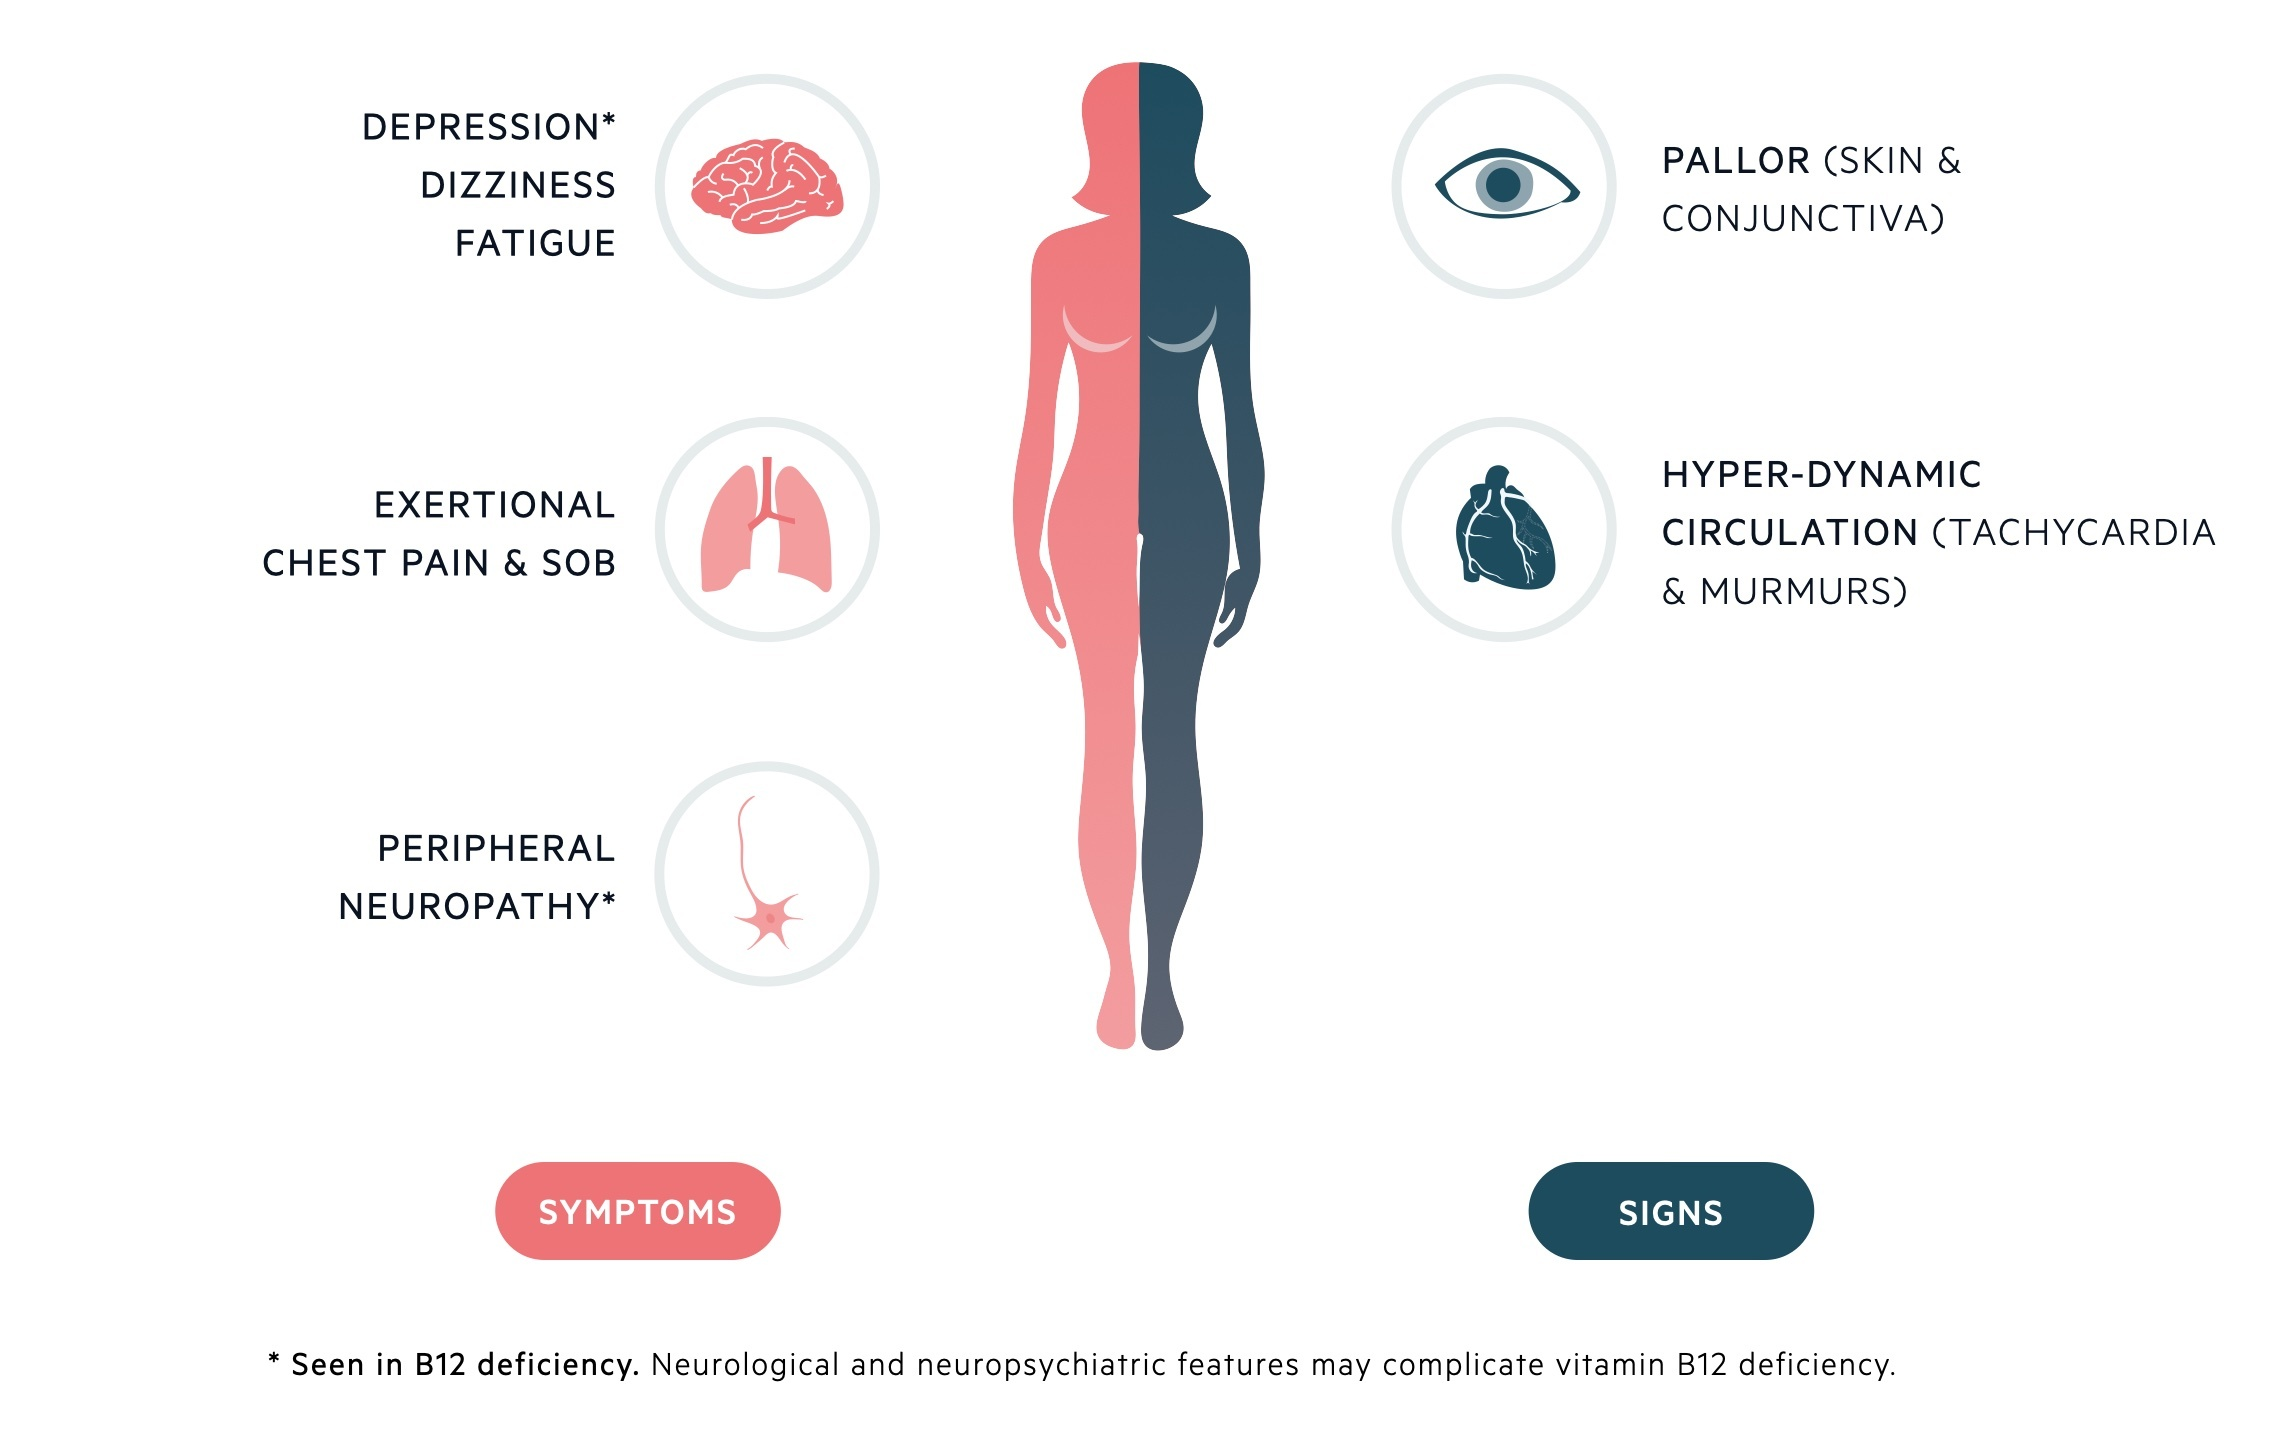 Clinical features of macrocytic anaemia